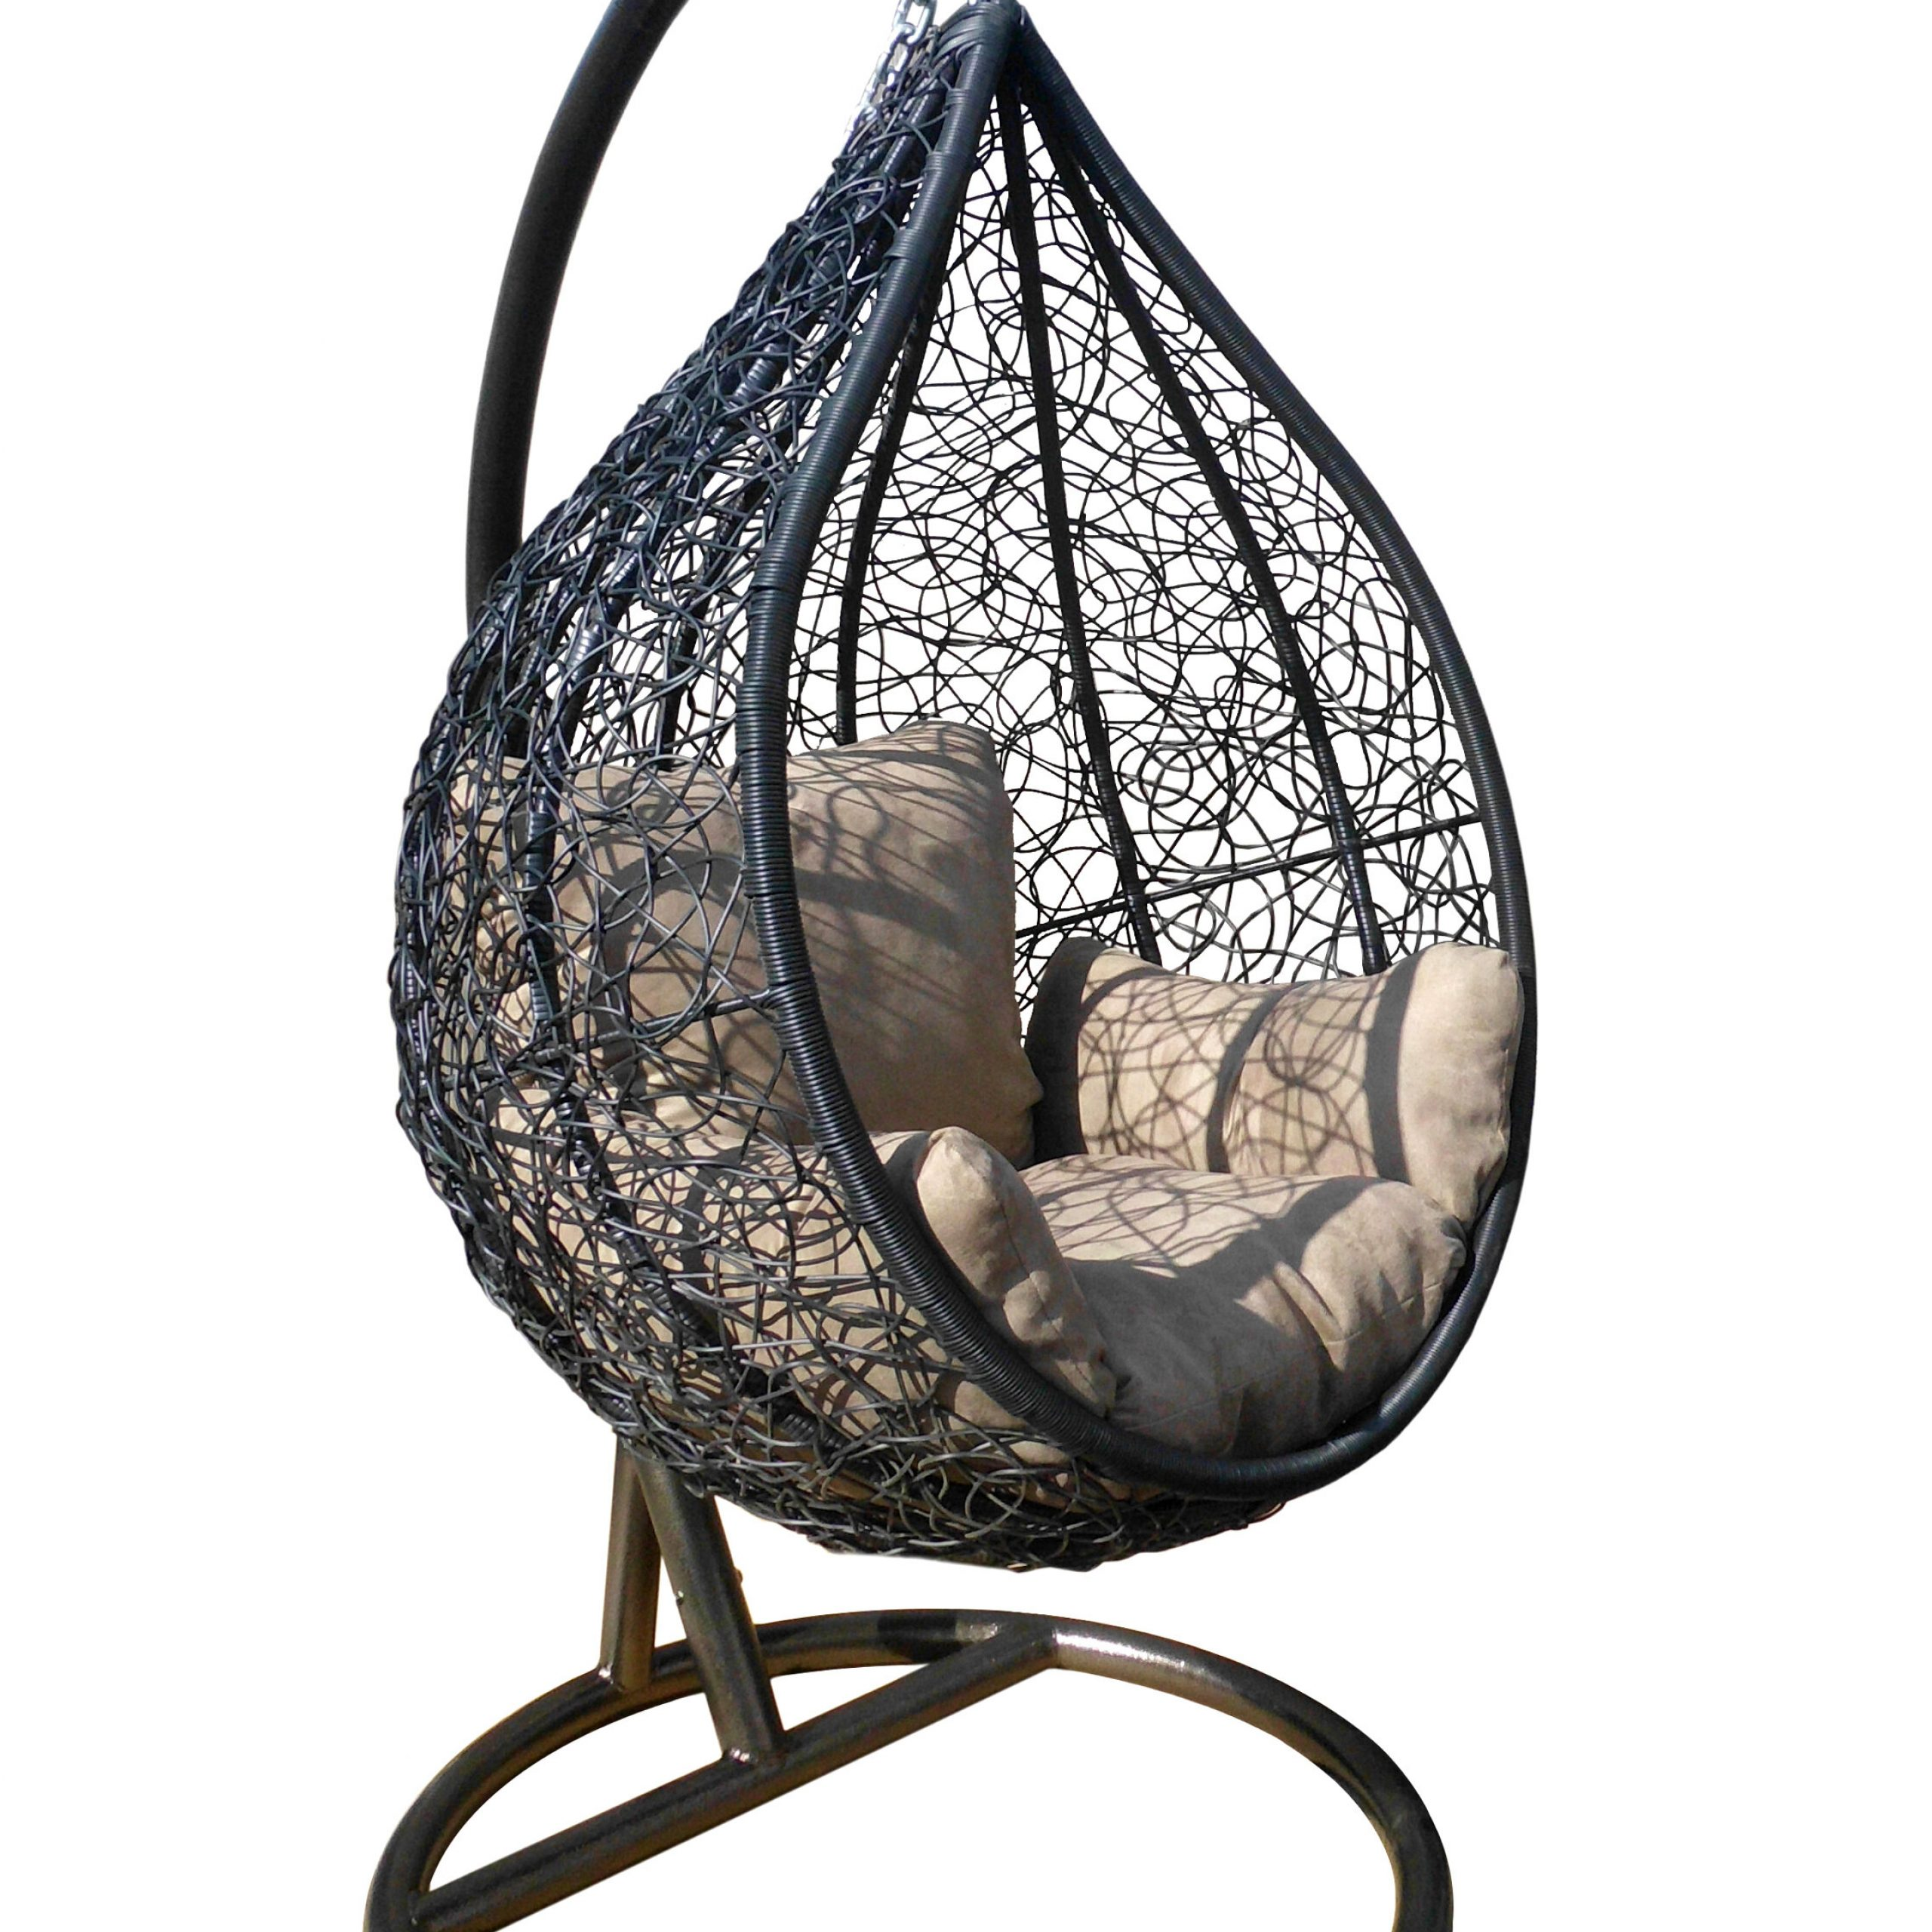 Cothern Patio Egg Porch Swing With Stand Intended For Outdoor Wicker Plastic Tear Porch Swings With Stand (View 21 of 25)